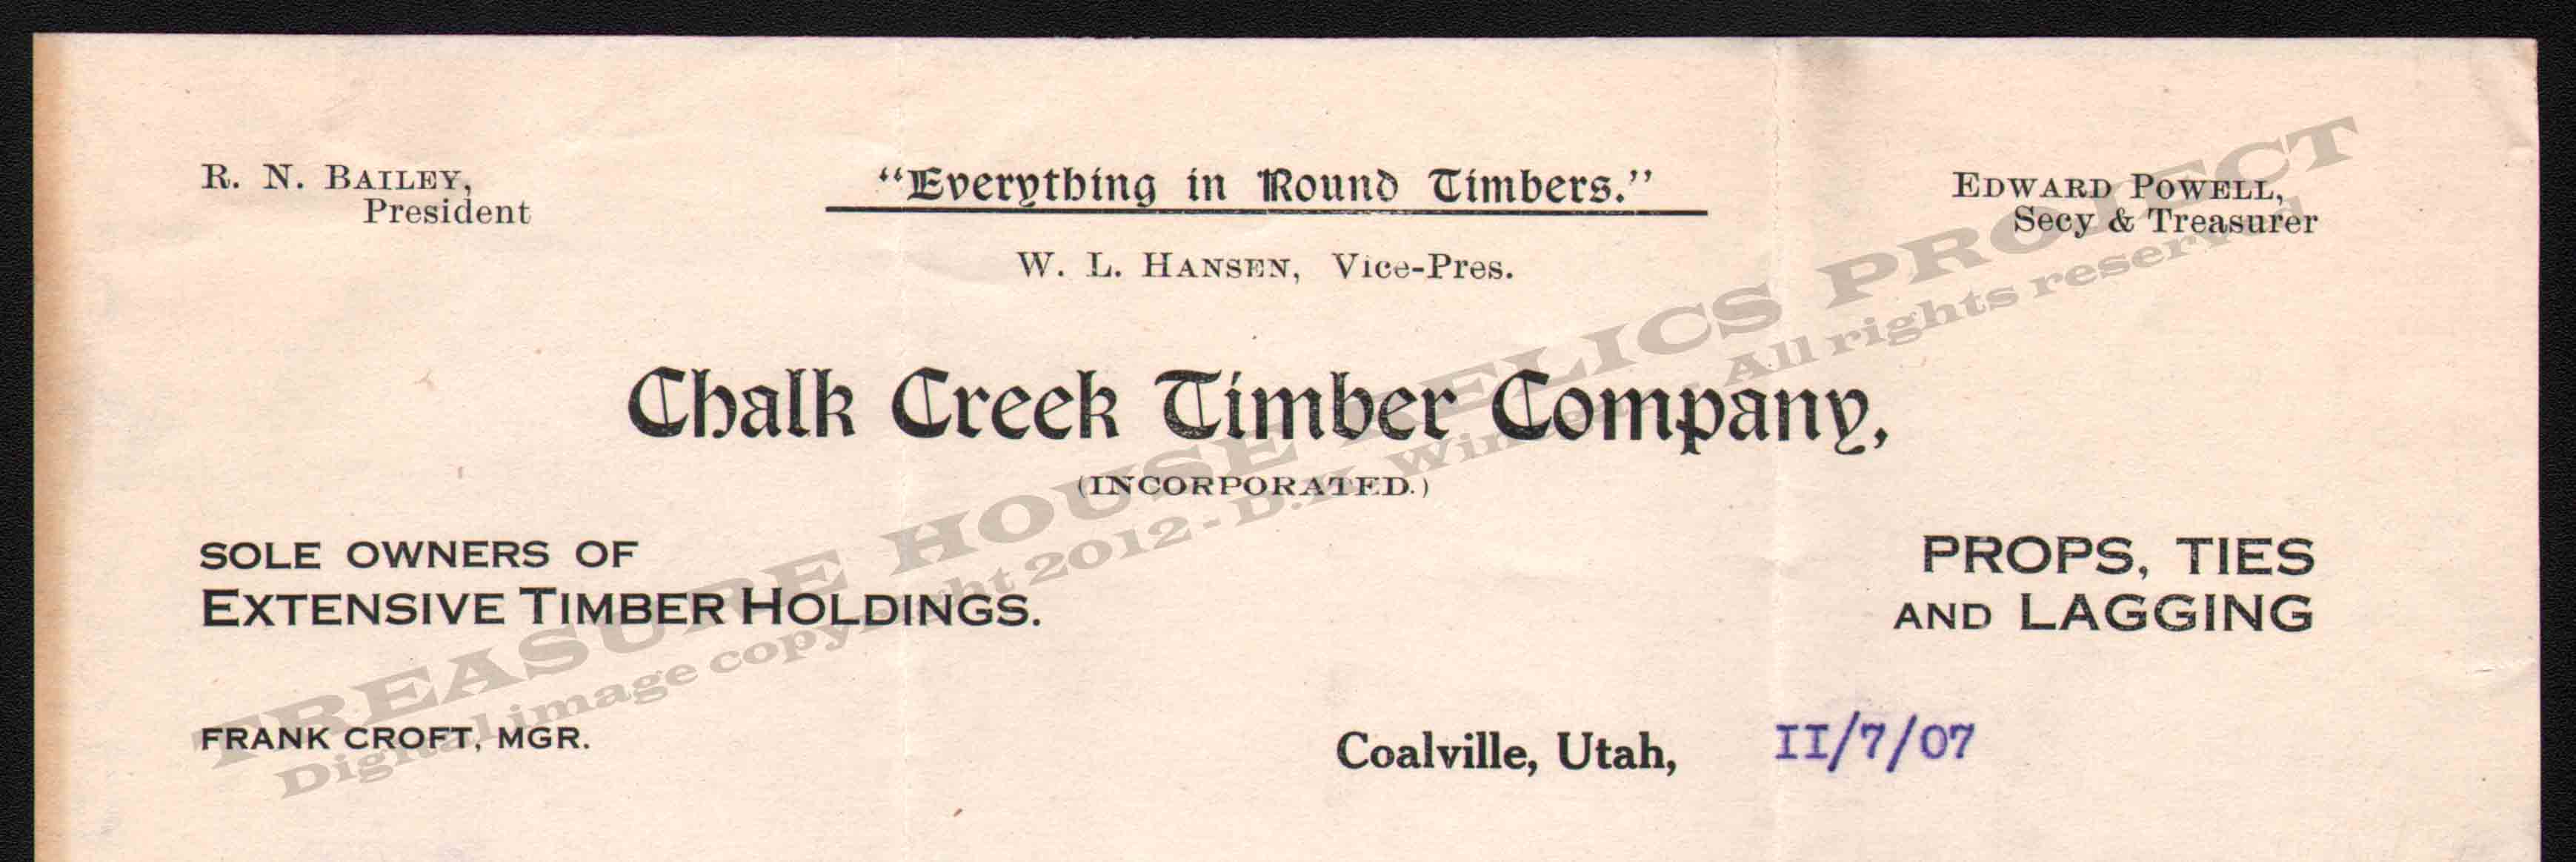 LETTERHEAD_CHALK_CREEK_TIMBER_CO_1907_400_crop_emboss.jpg